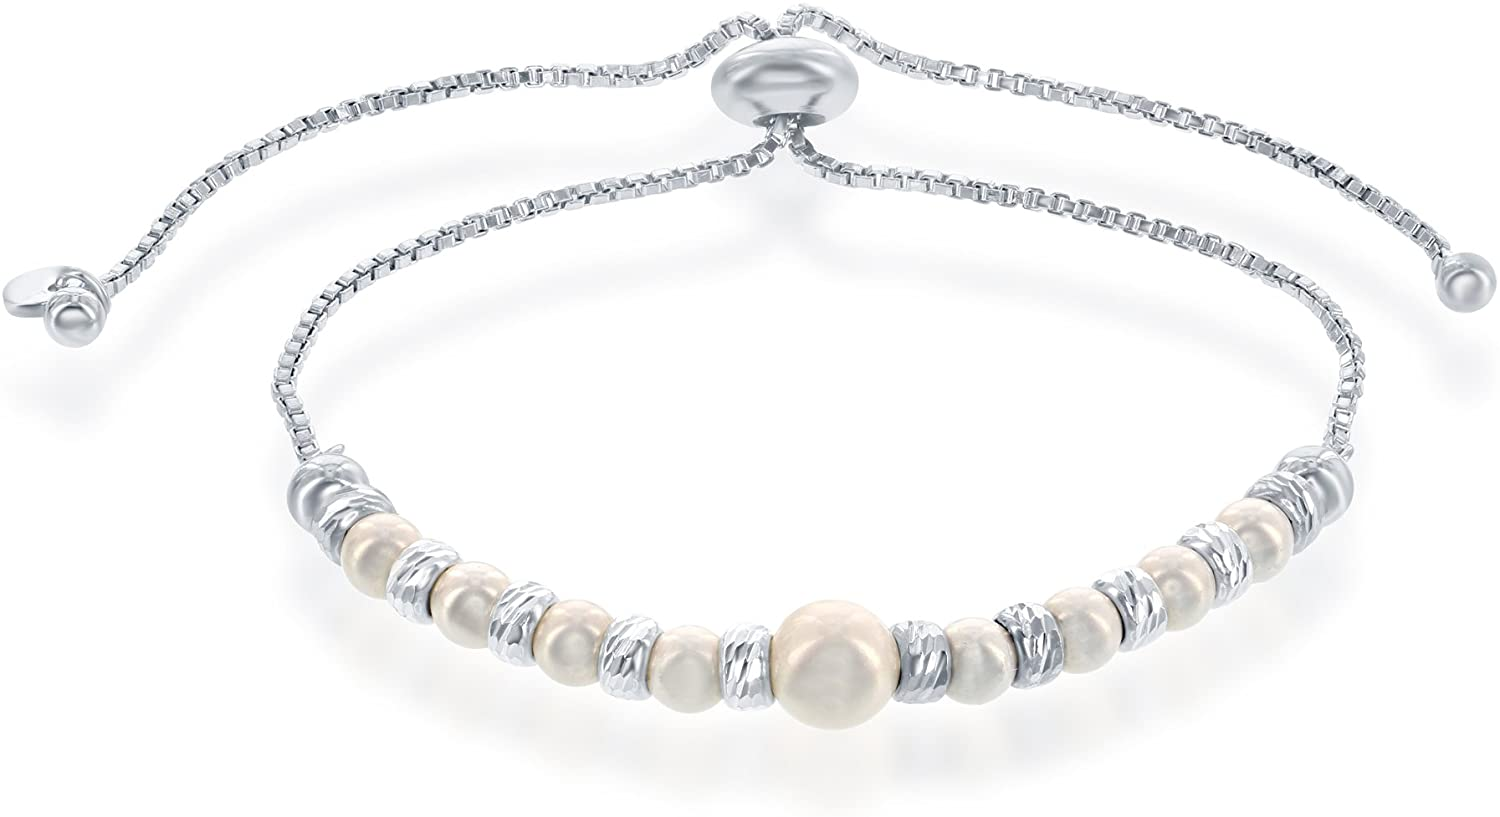 Italian Sterling Silver Alternating Diamond Cut Beads & Set with Swarovski Simulated Pearls Adjustable Bolo Friendship Bracelet